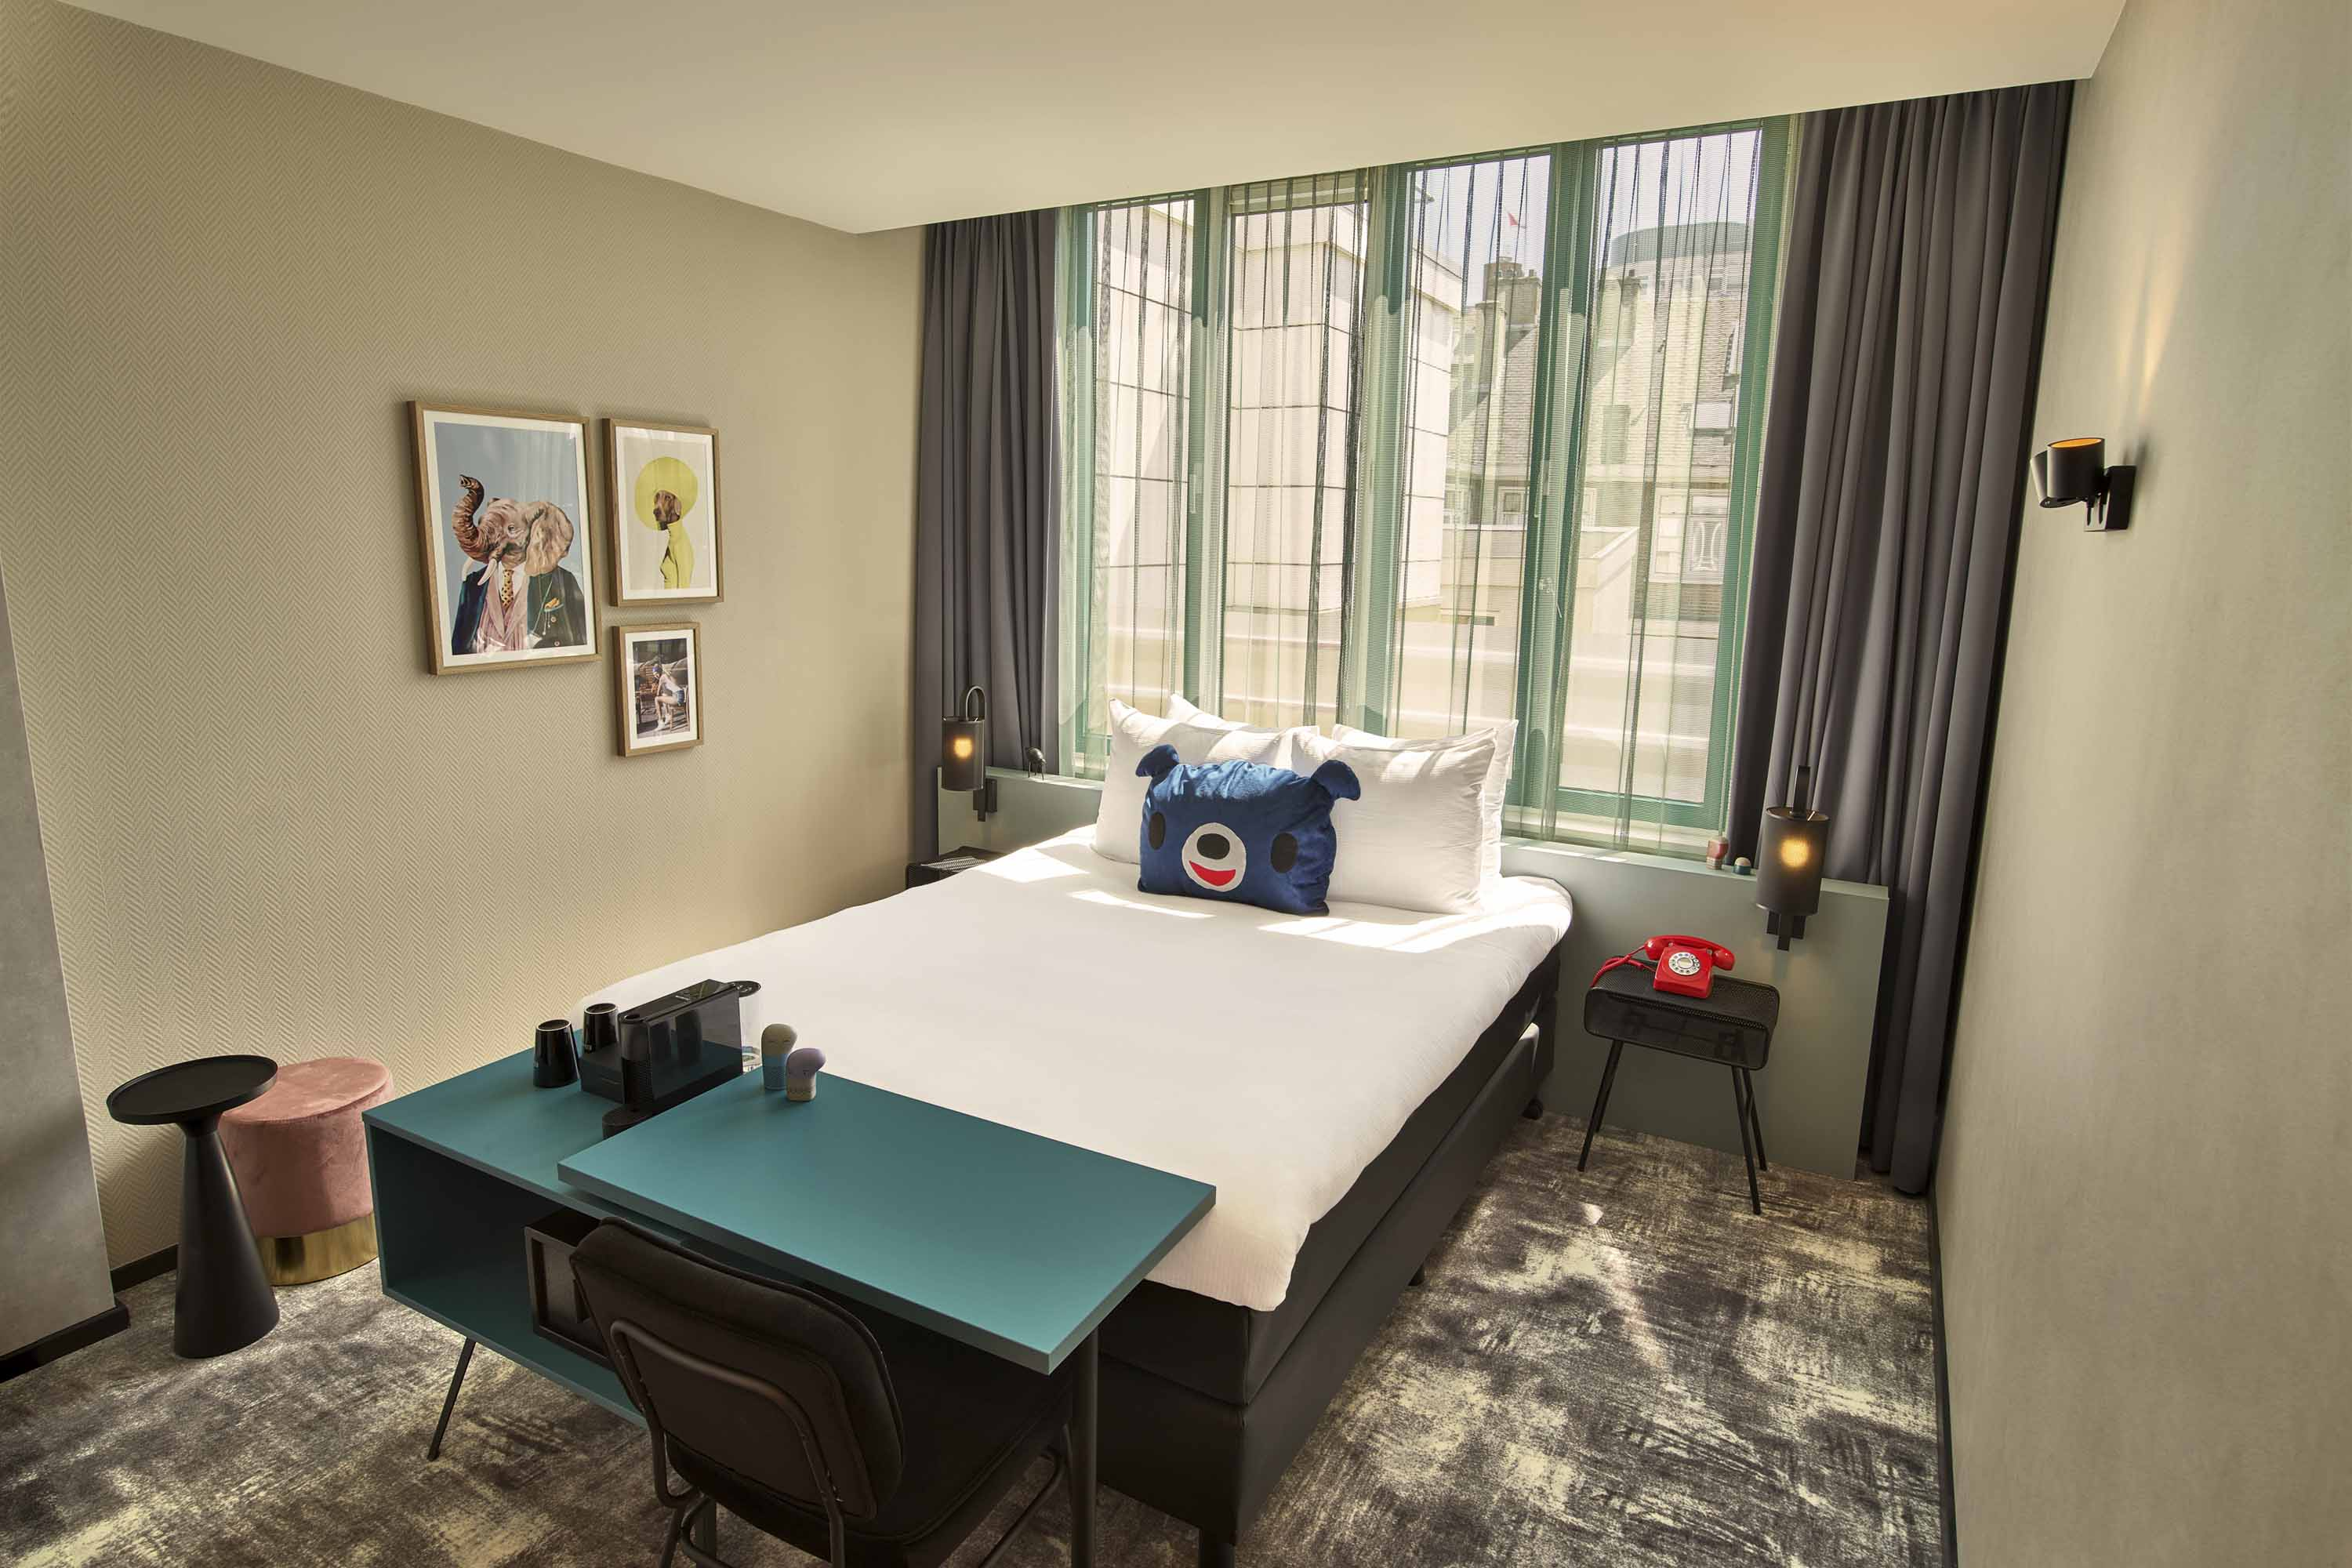 The-ed-hotel-amsterdam-double-1